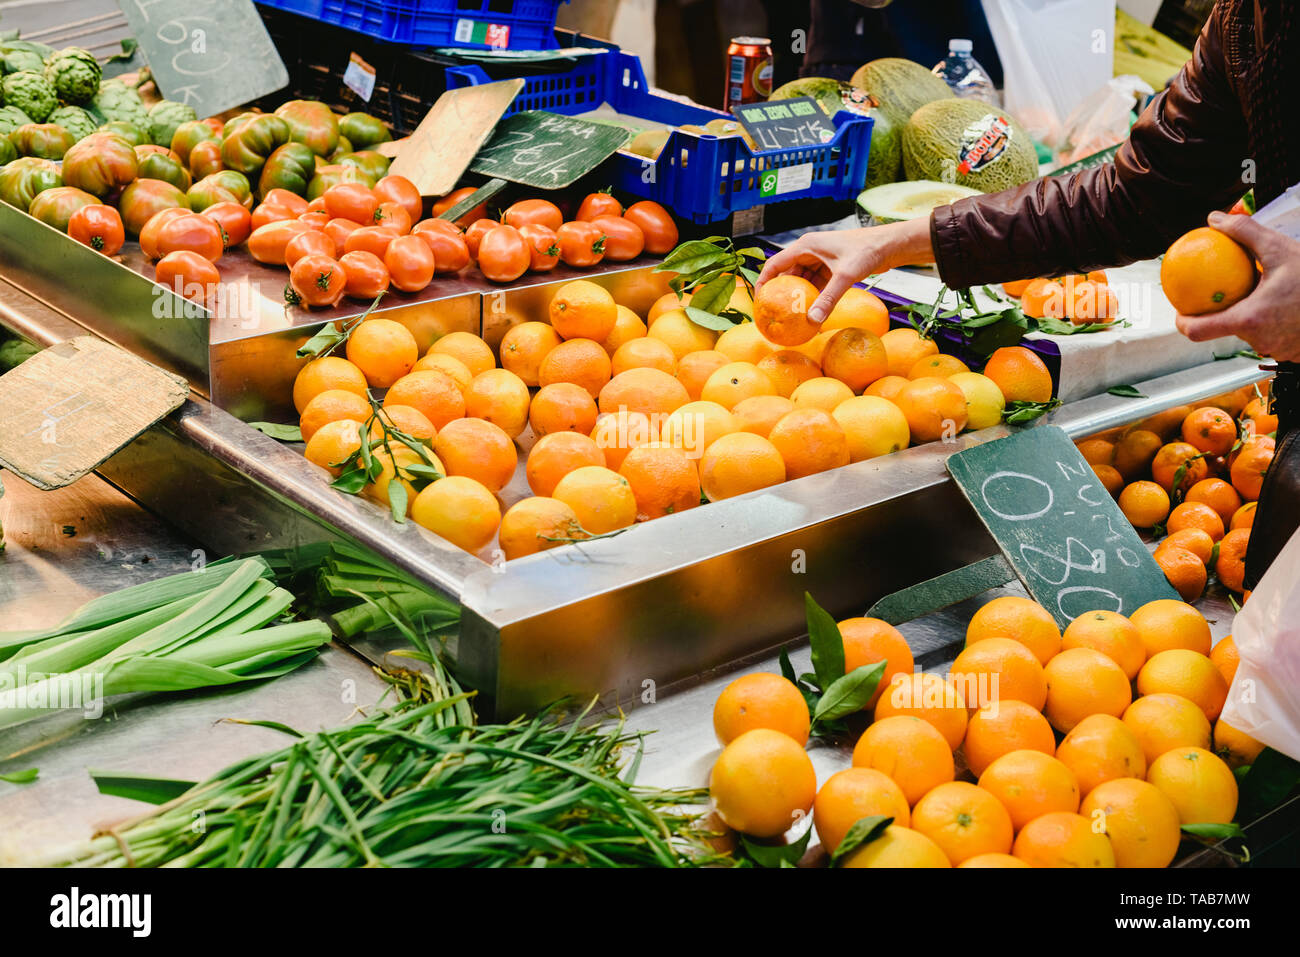 Valencia, Spain - February 2, 2019: Woman picking oranges from a fruit stall in a market . - Stock Image